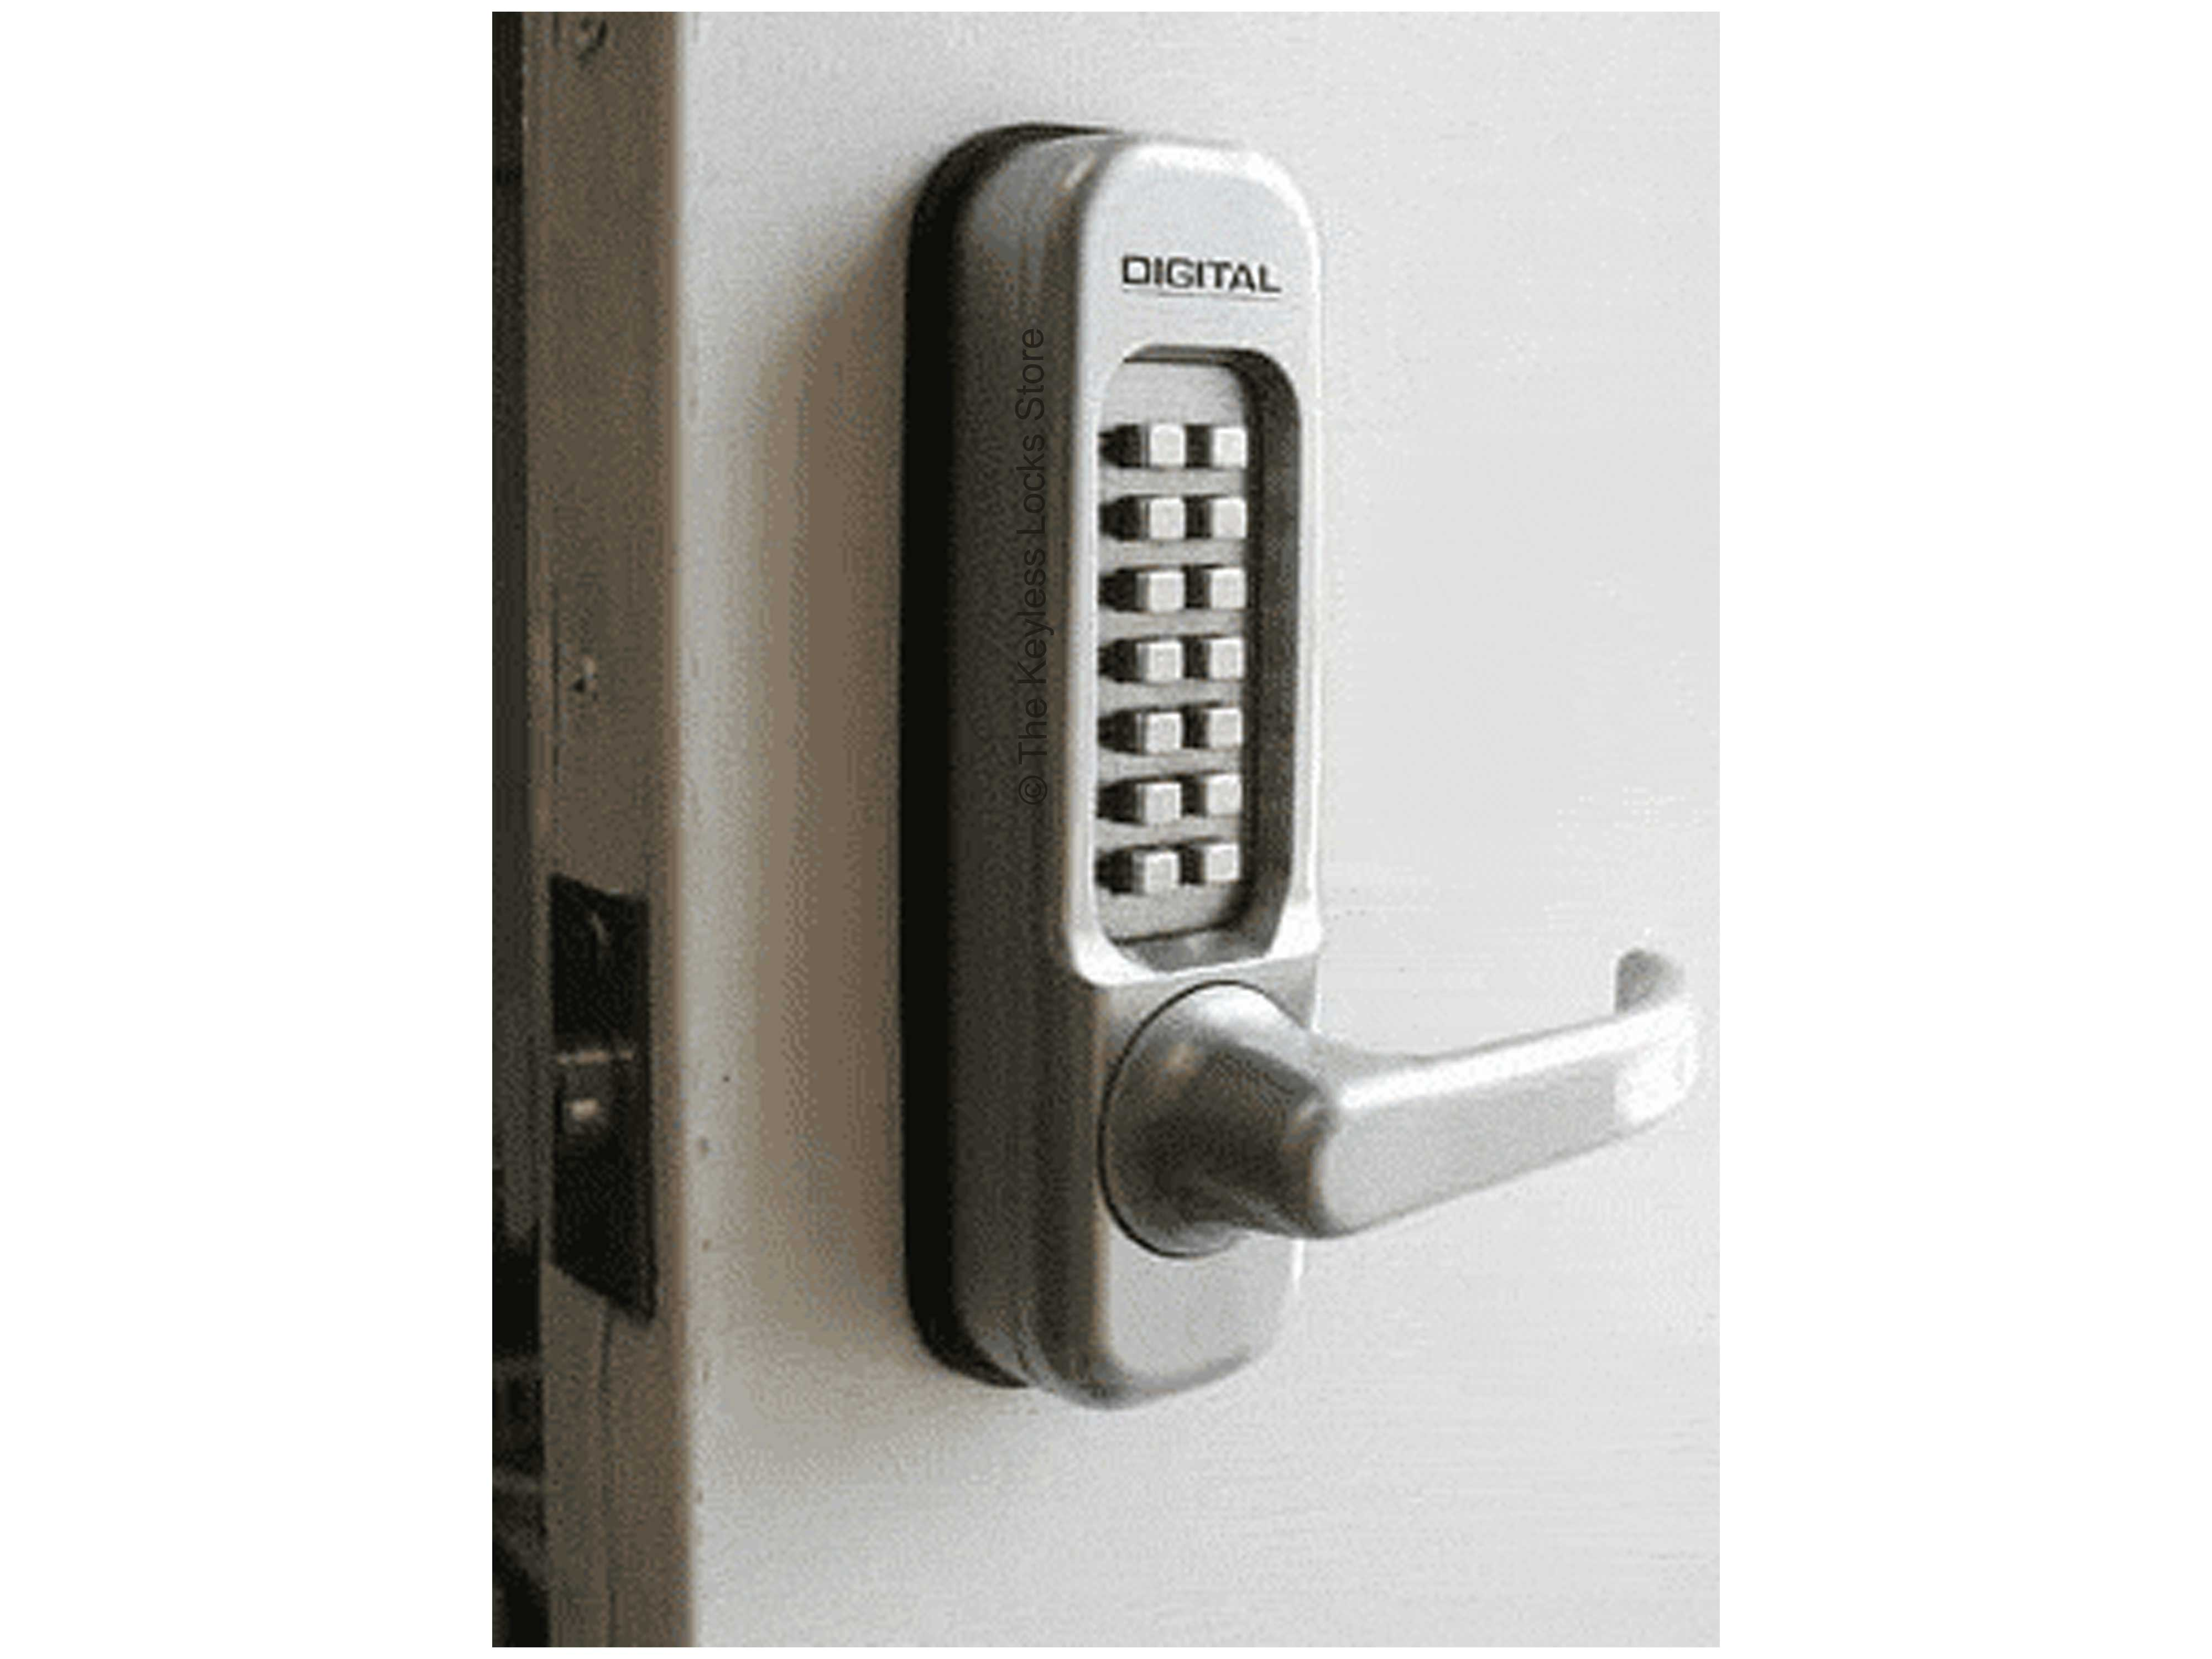 Lockey 1150 Passage Lever-Handle Latchbolt Keypad Lock - Click Image to Close